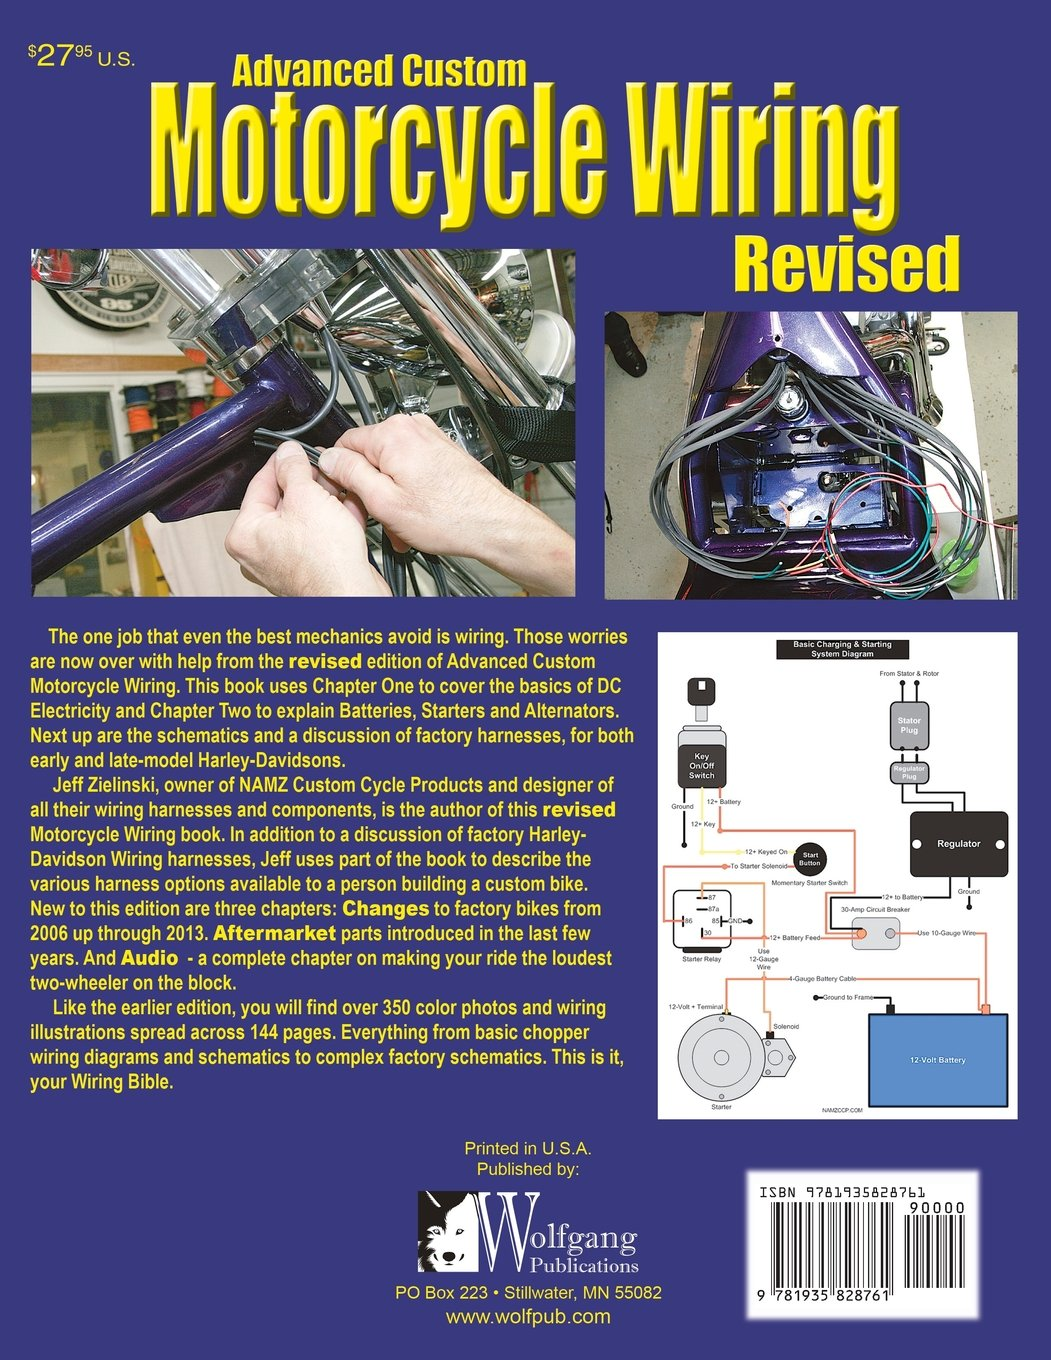 Advanced Custom Motorcycle Wiring Revised Edition Jeff Zielinski Schematics 9781935828761 Books